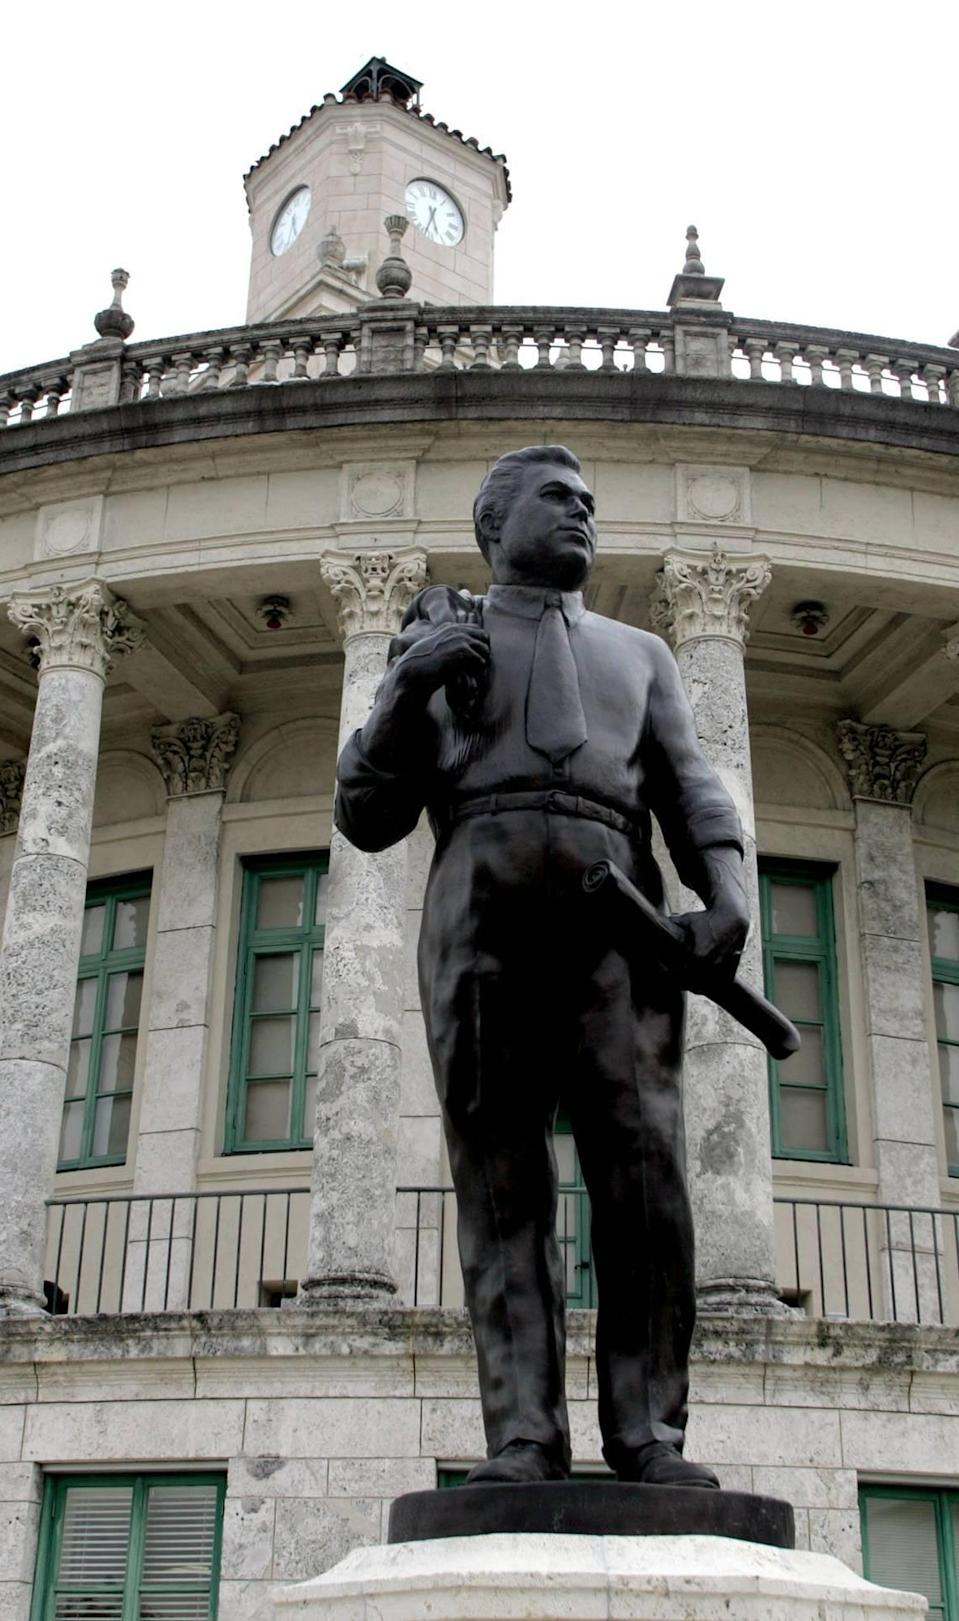 The new George Merrick statue by sculptor William Beckwith was unveiled in May of 2006 at Coral Gables City Hall.